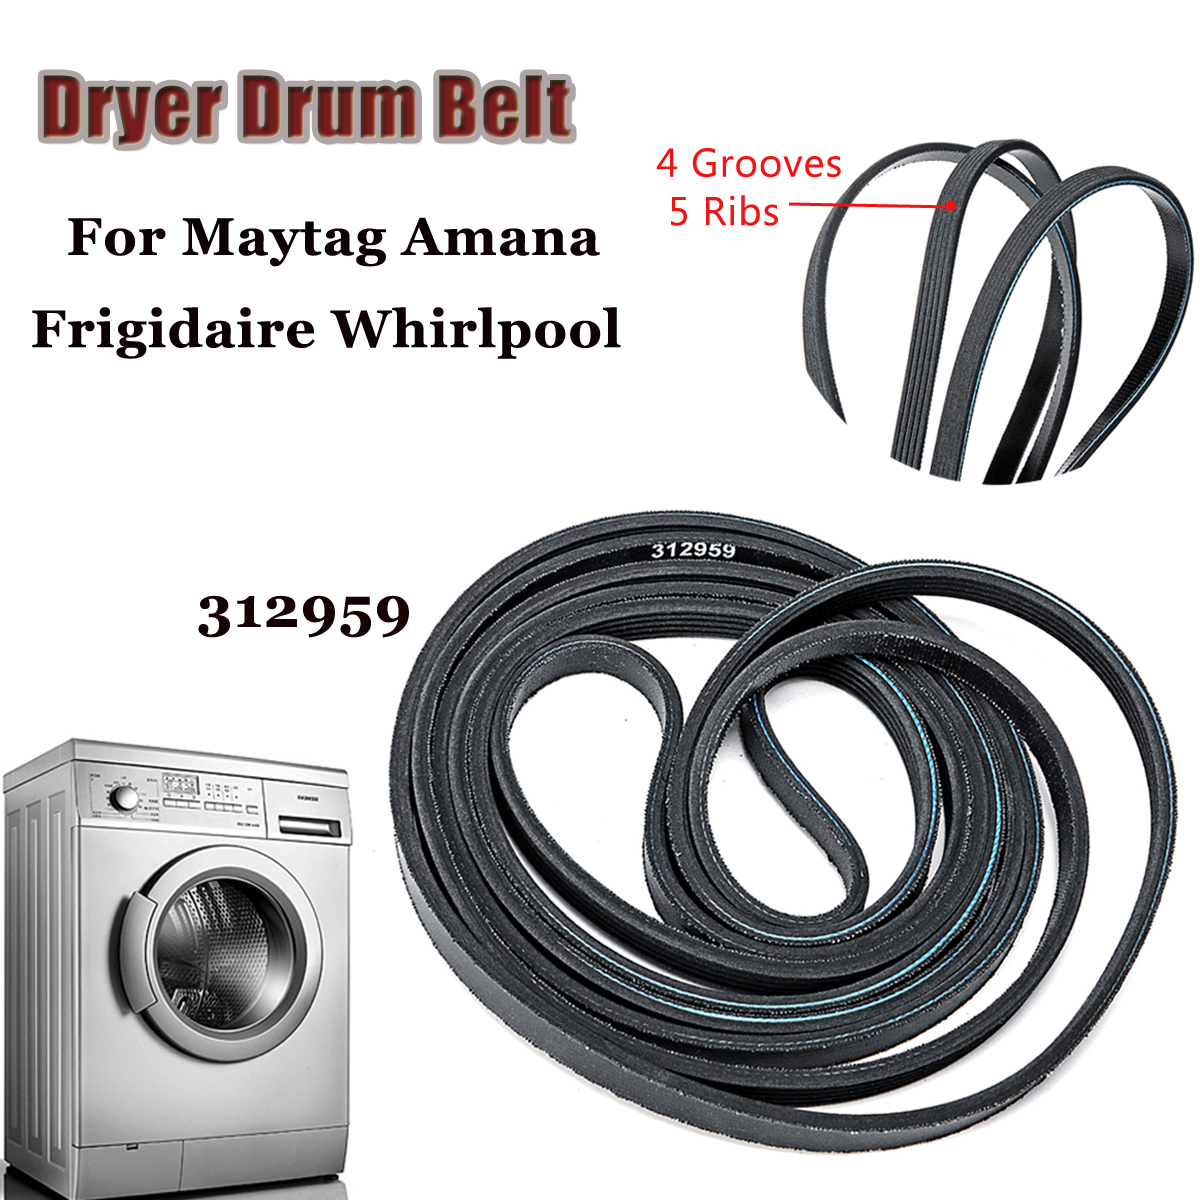 Dryer Drum Belt For Maytag Amana Frigidaire Whirlpool 312959 3 12959 Wiring Harness Diagram Y312959 Clothes Parts In From Home Appliances On